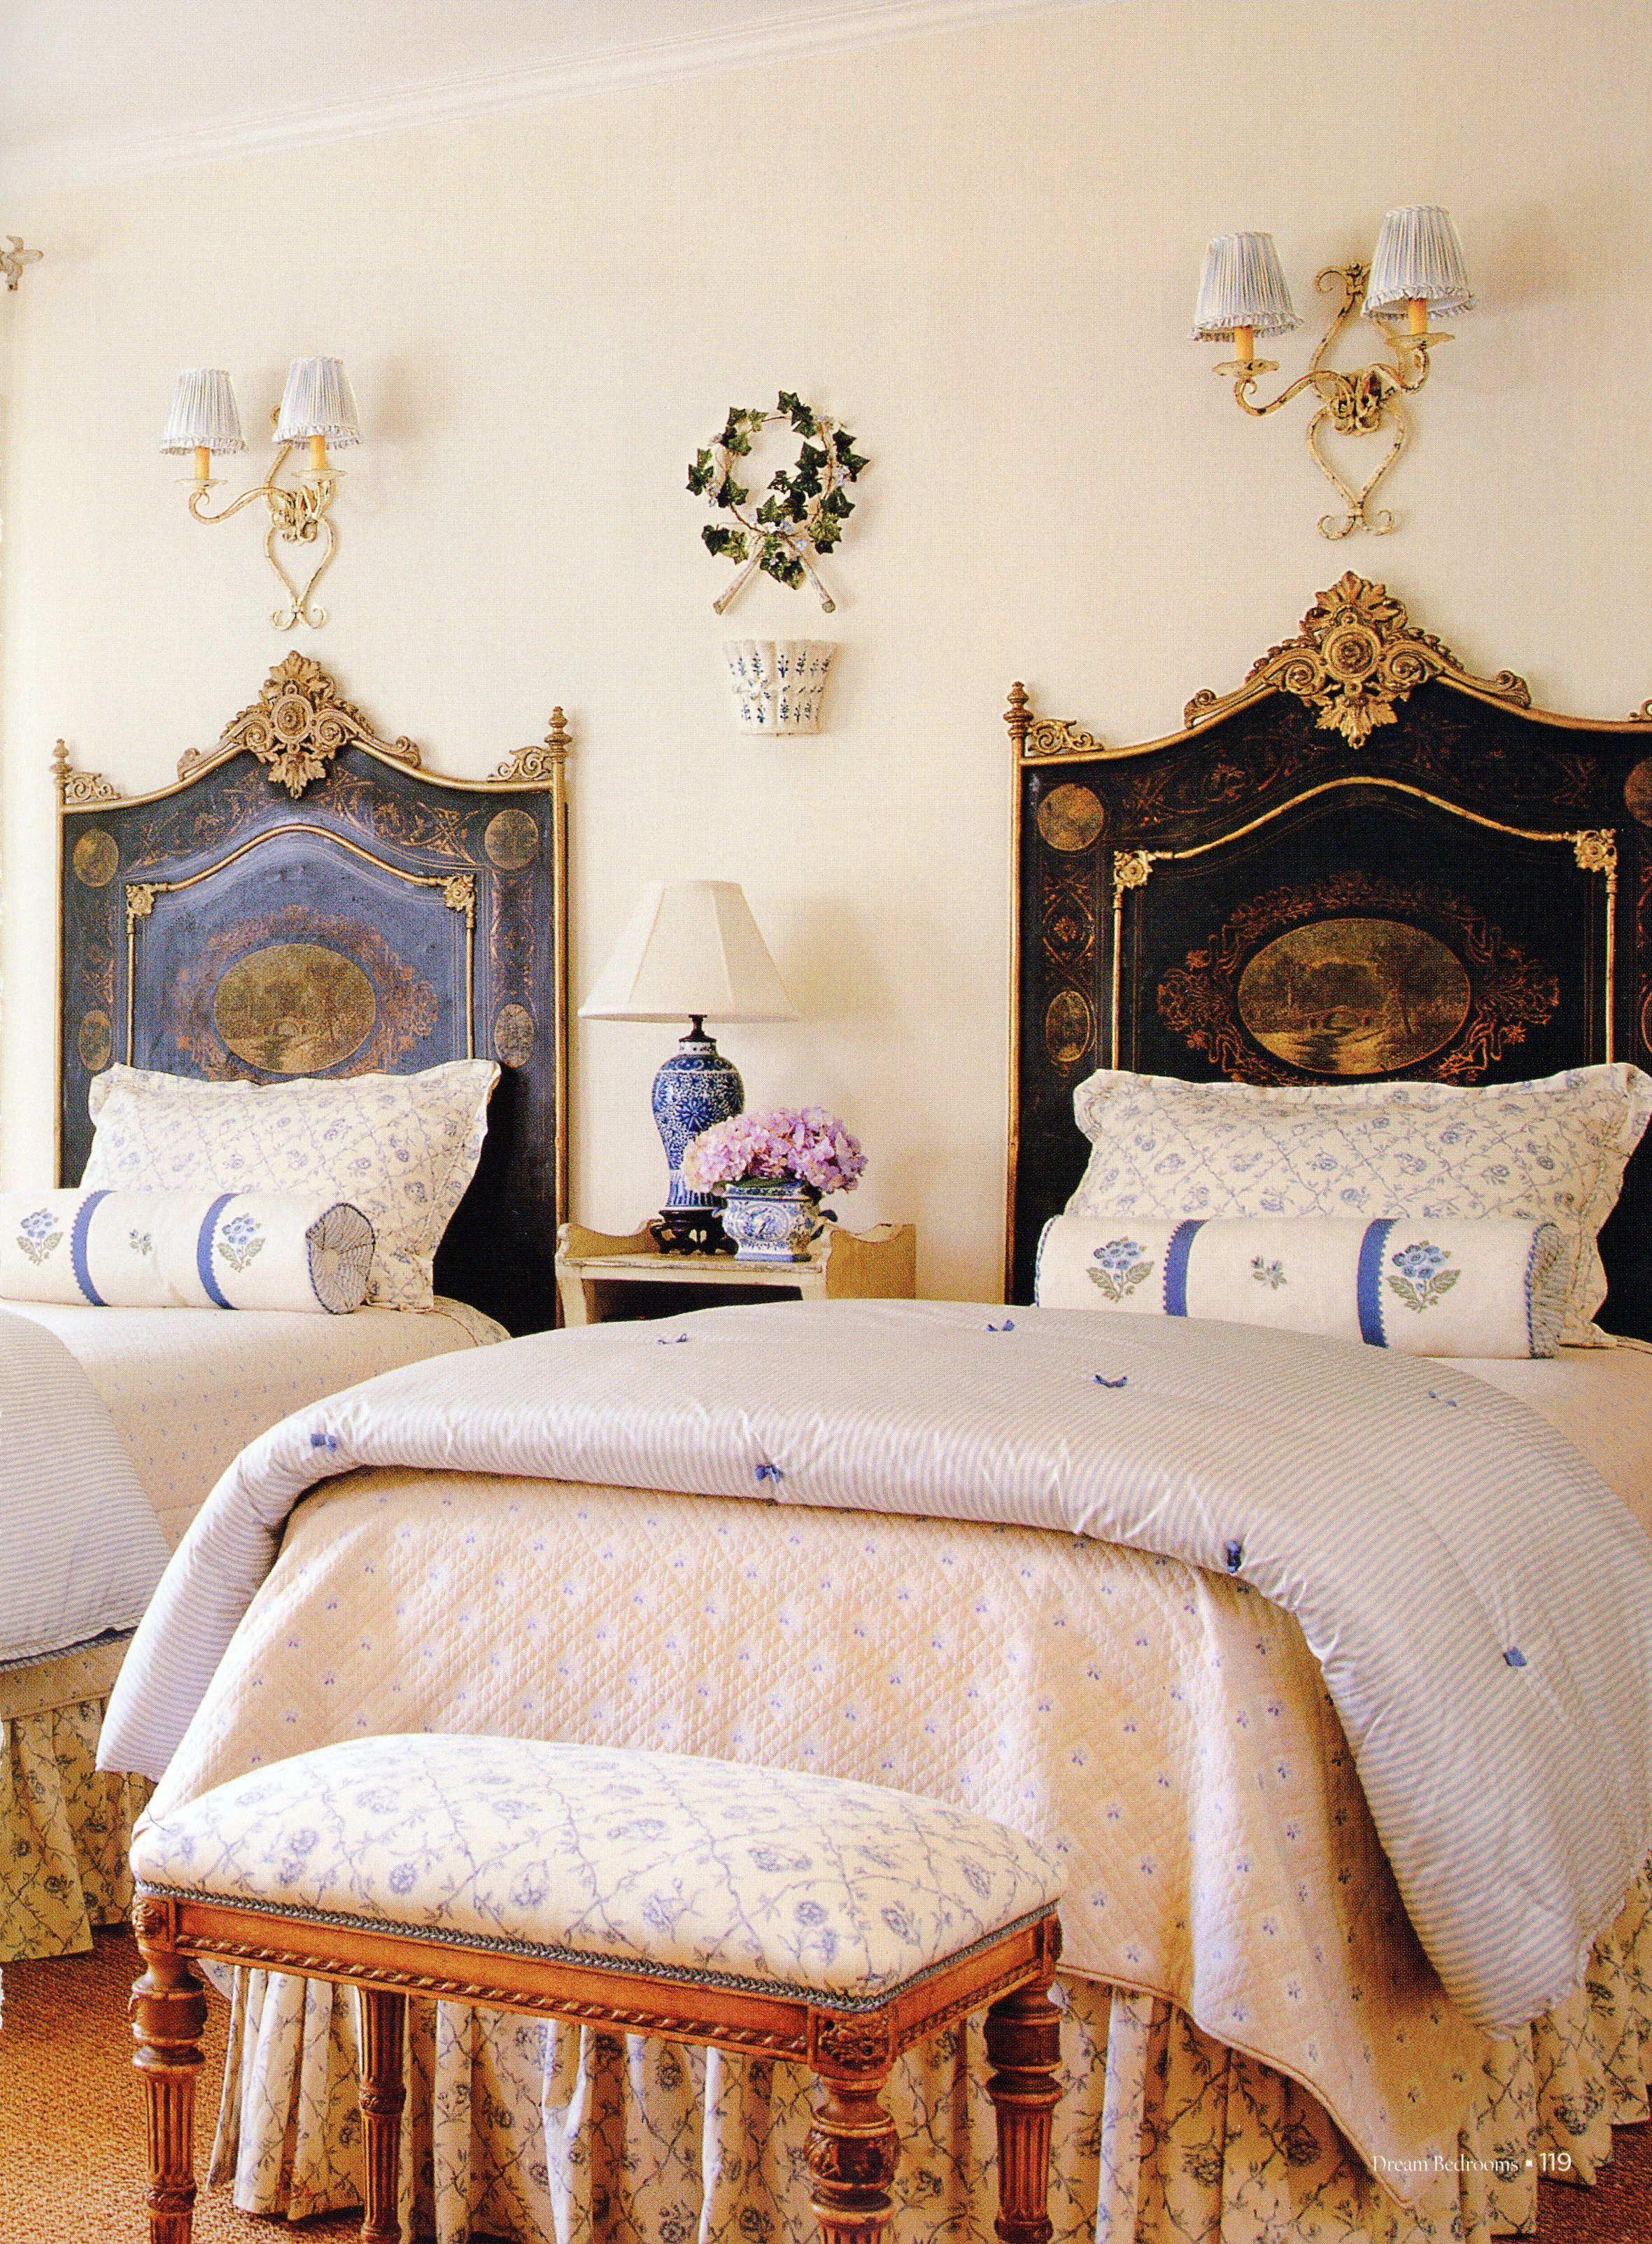 Western Inspired Room Love The Headboard With Old Doors: Cozy Cottage-Style Bedrooms